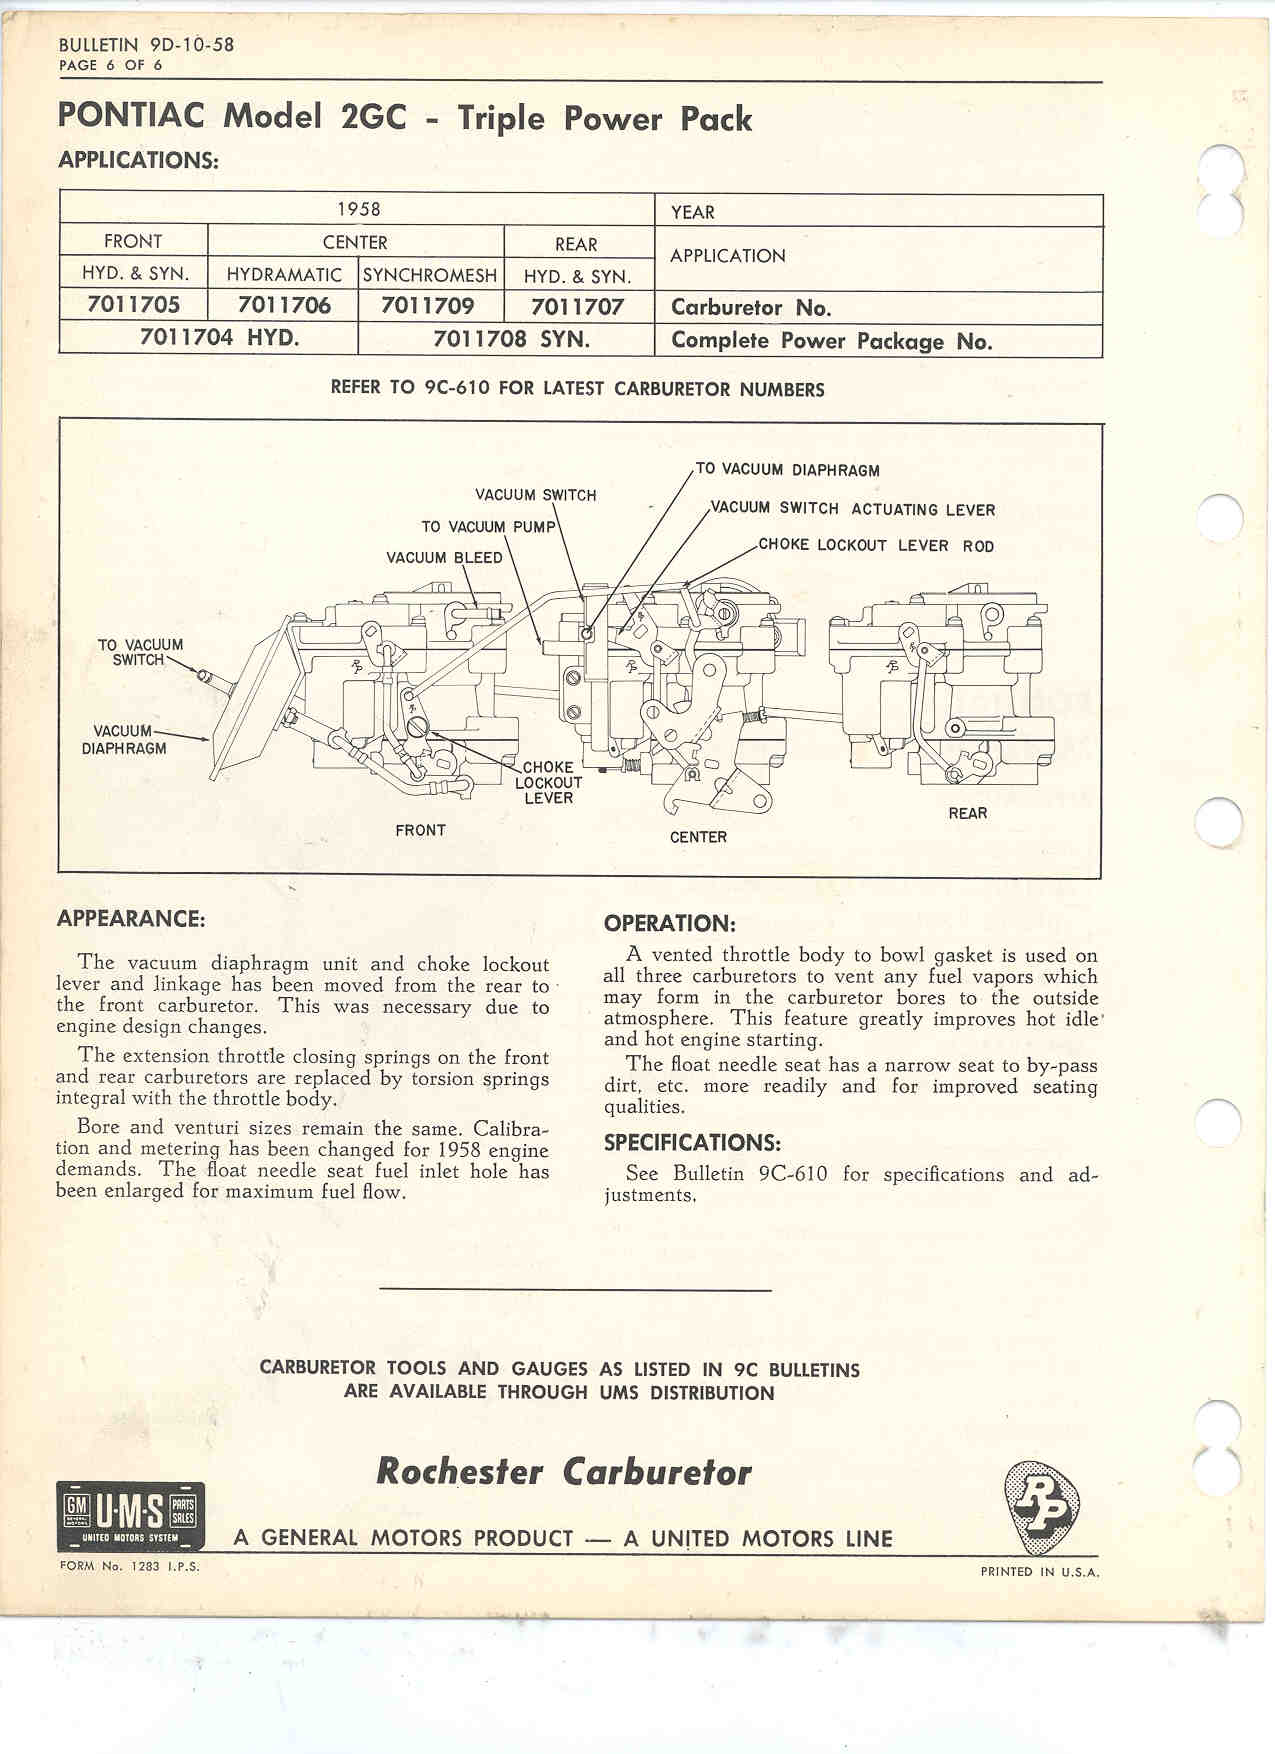 The Carburetor Shop Troubleshooting 85 Chevy Truck Gas Tank Wiring Rochester Bulletin Here Is Another Link Showing A Slotted Gasket Regular Often Used For Marine Carbs And Some Other Hot Idle Compensation